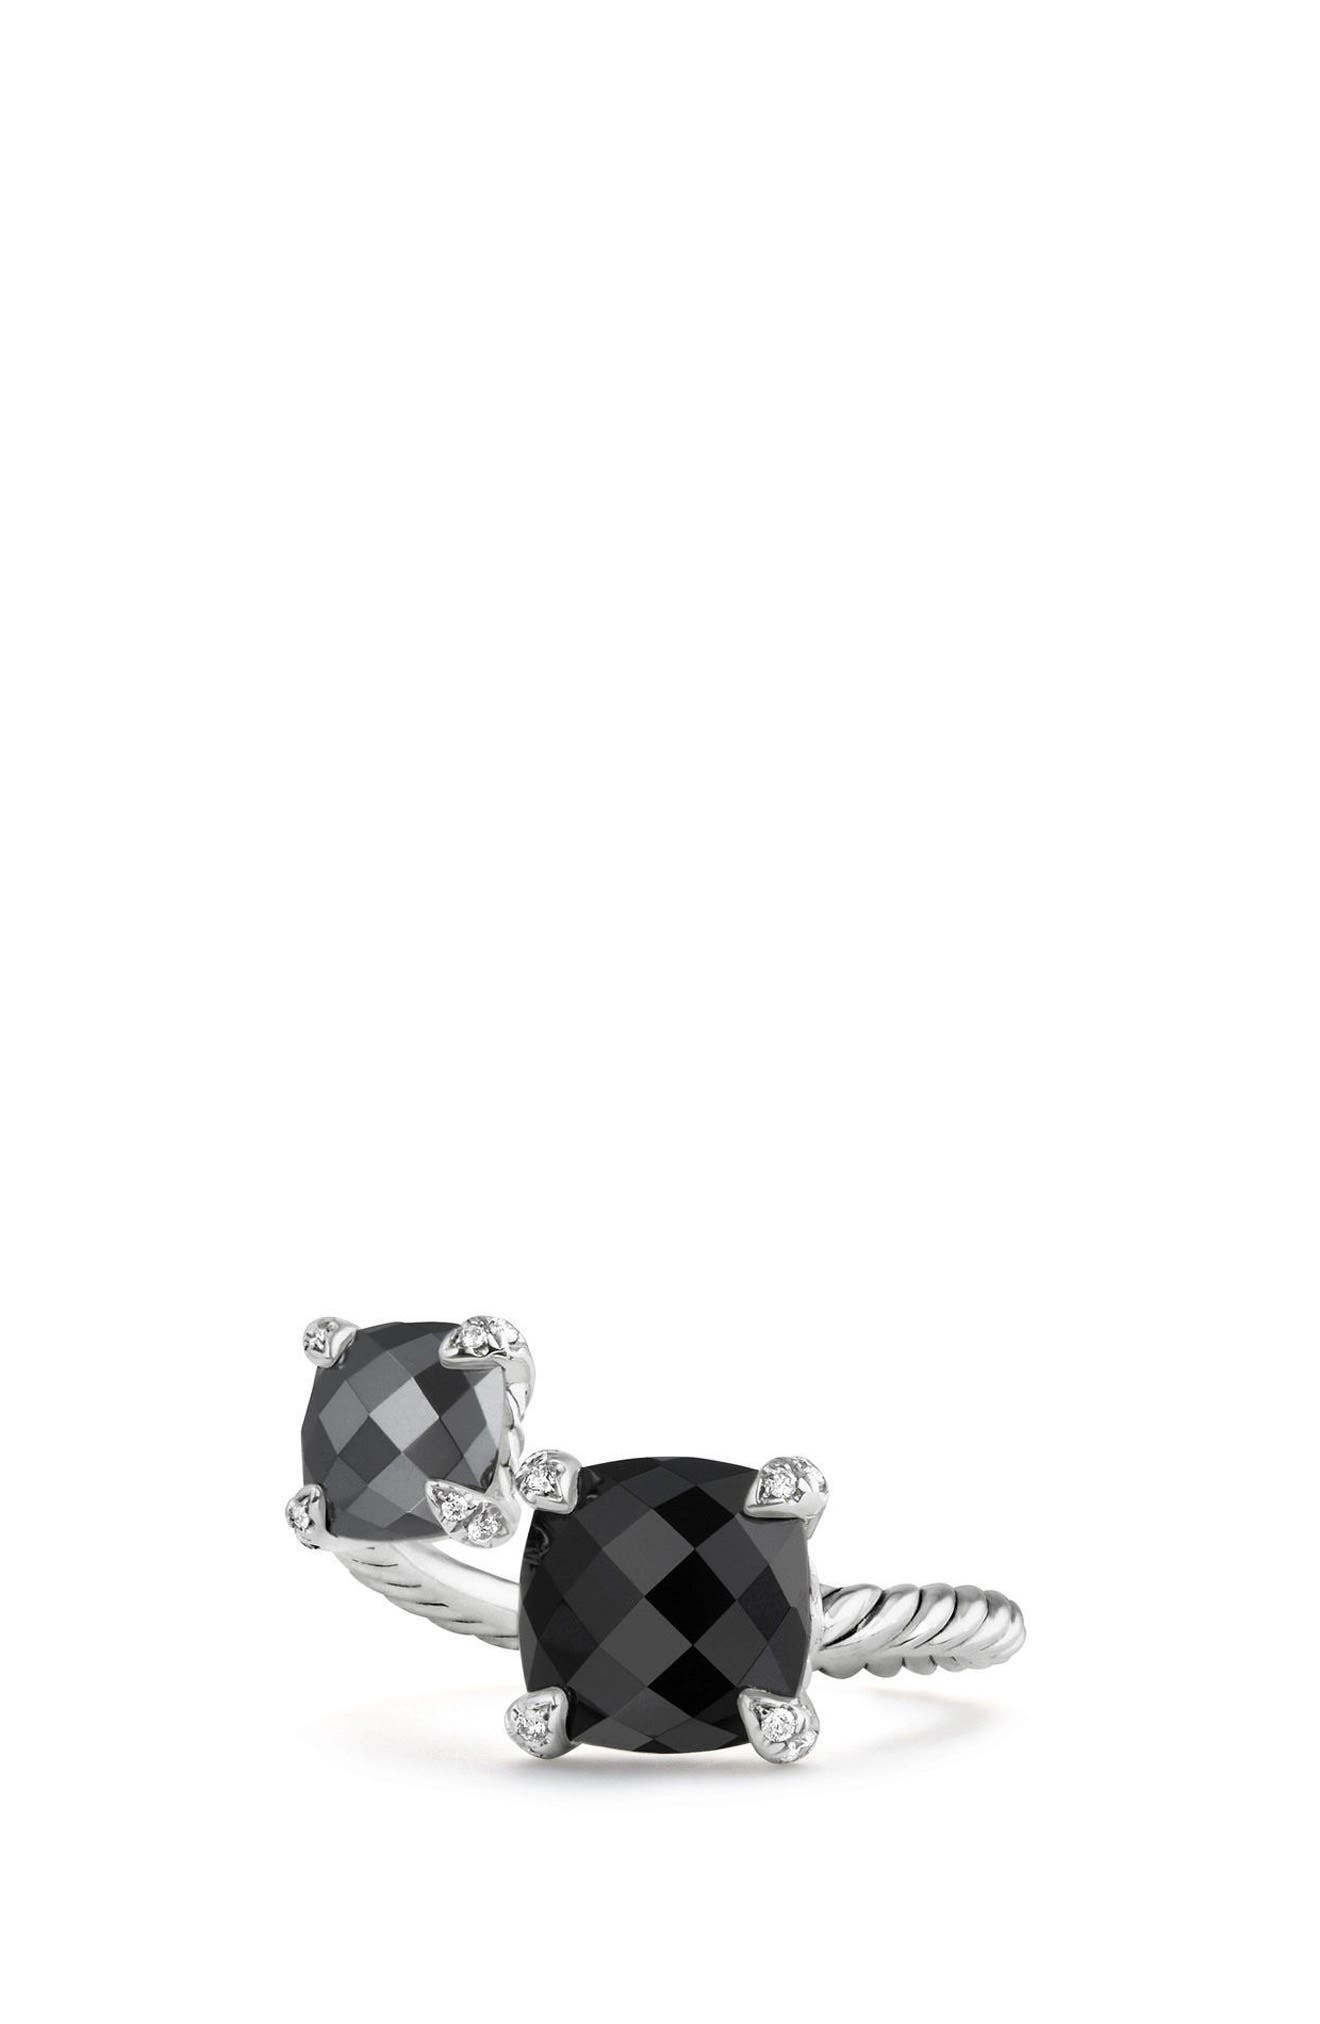 Châtelaine Bypass Ring with Diamonds,                             Main thumbnail 1, color,                             BLACK ONYX